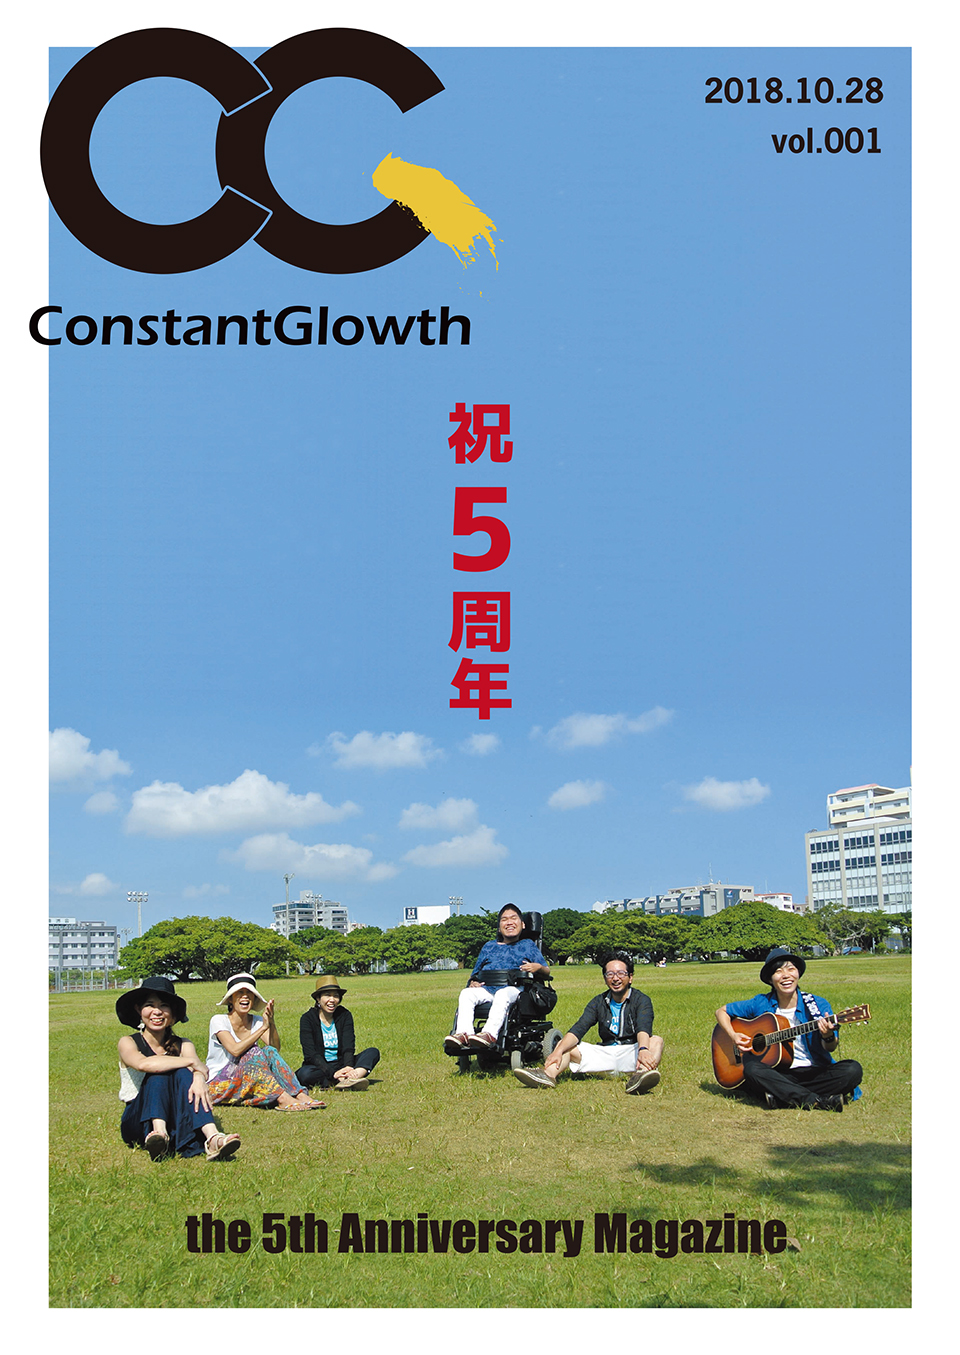 ConstantGlowth-記念誌